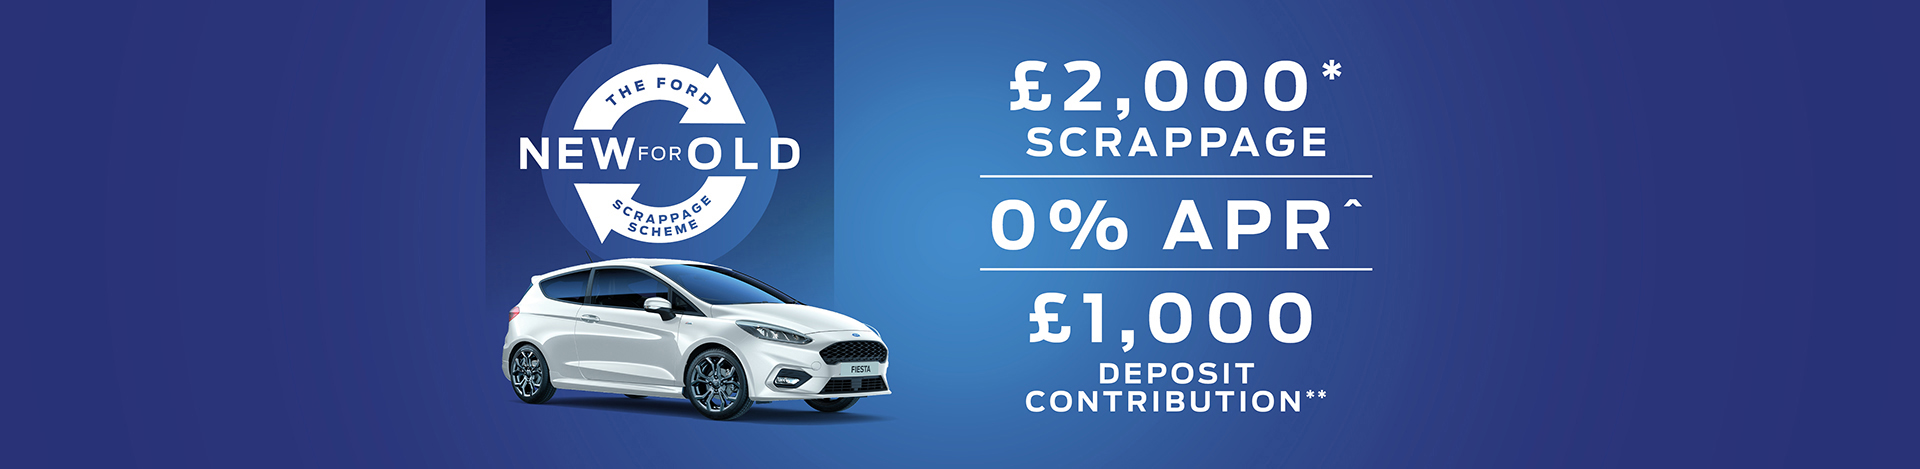 Ford Fiesta Scrappage Banner